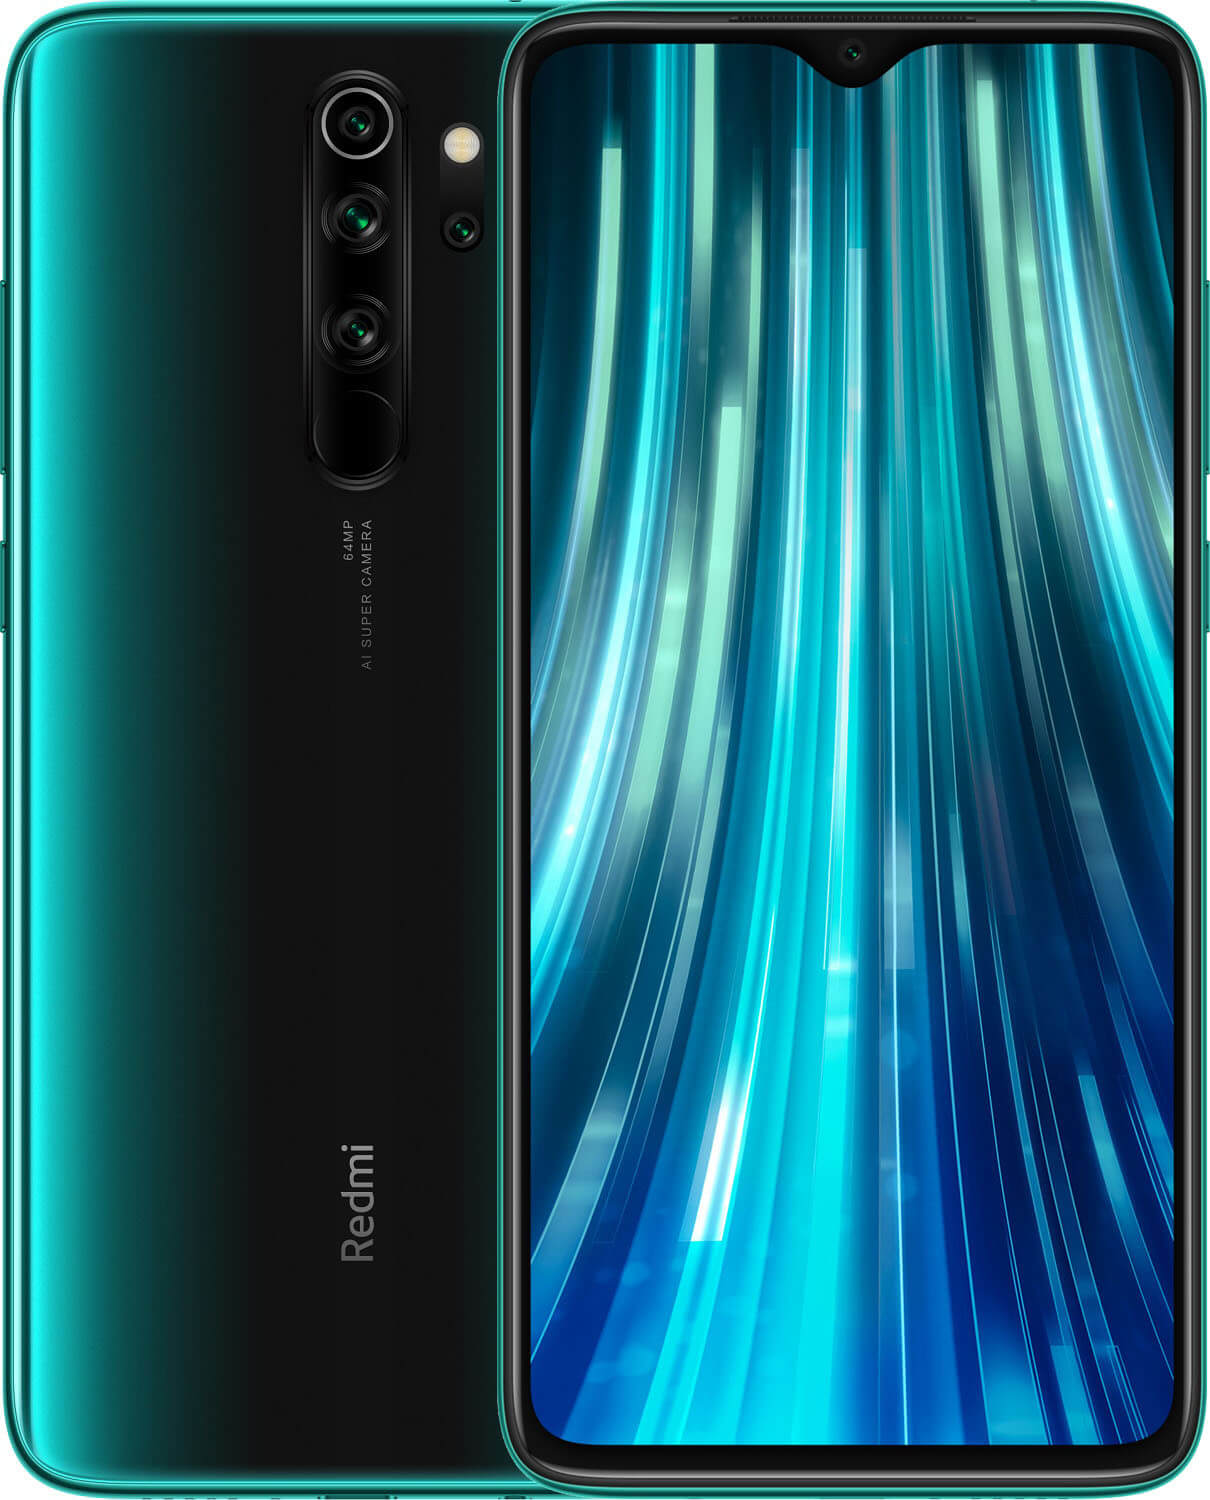 Xiaomi Redmi Note 8 PRO Dual SIM - 128GB, 6GB RAM, 4G LTE, Forest Green Global Versia